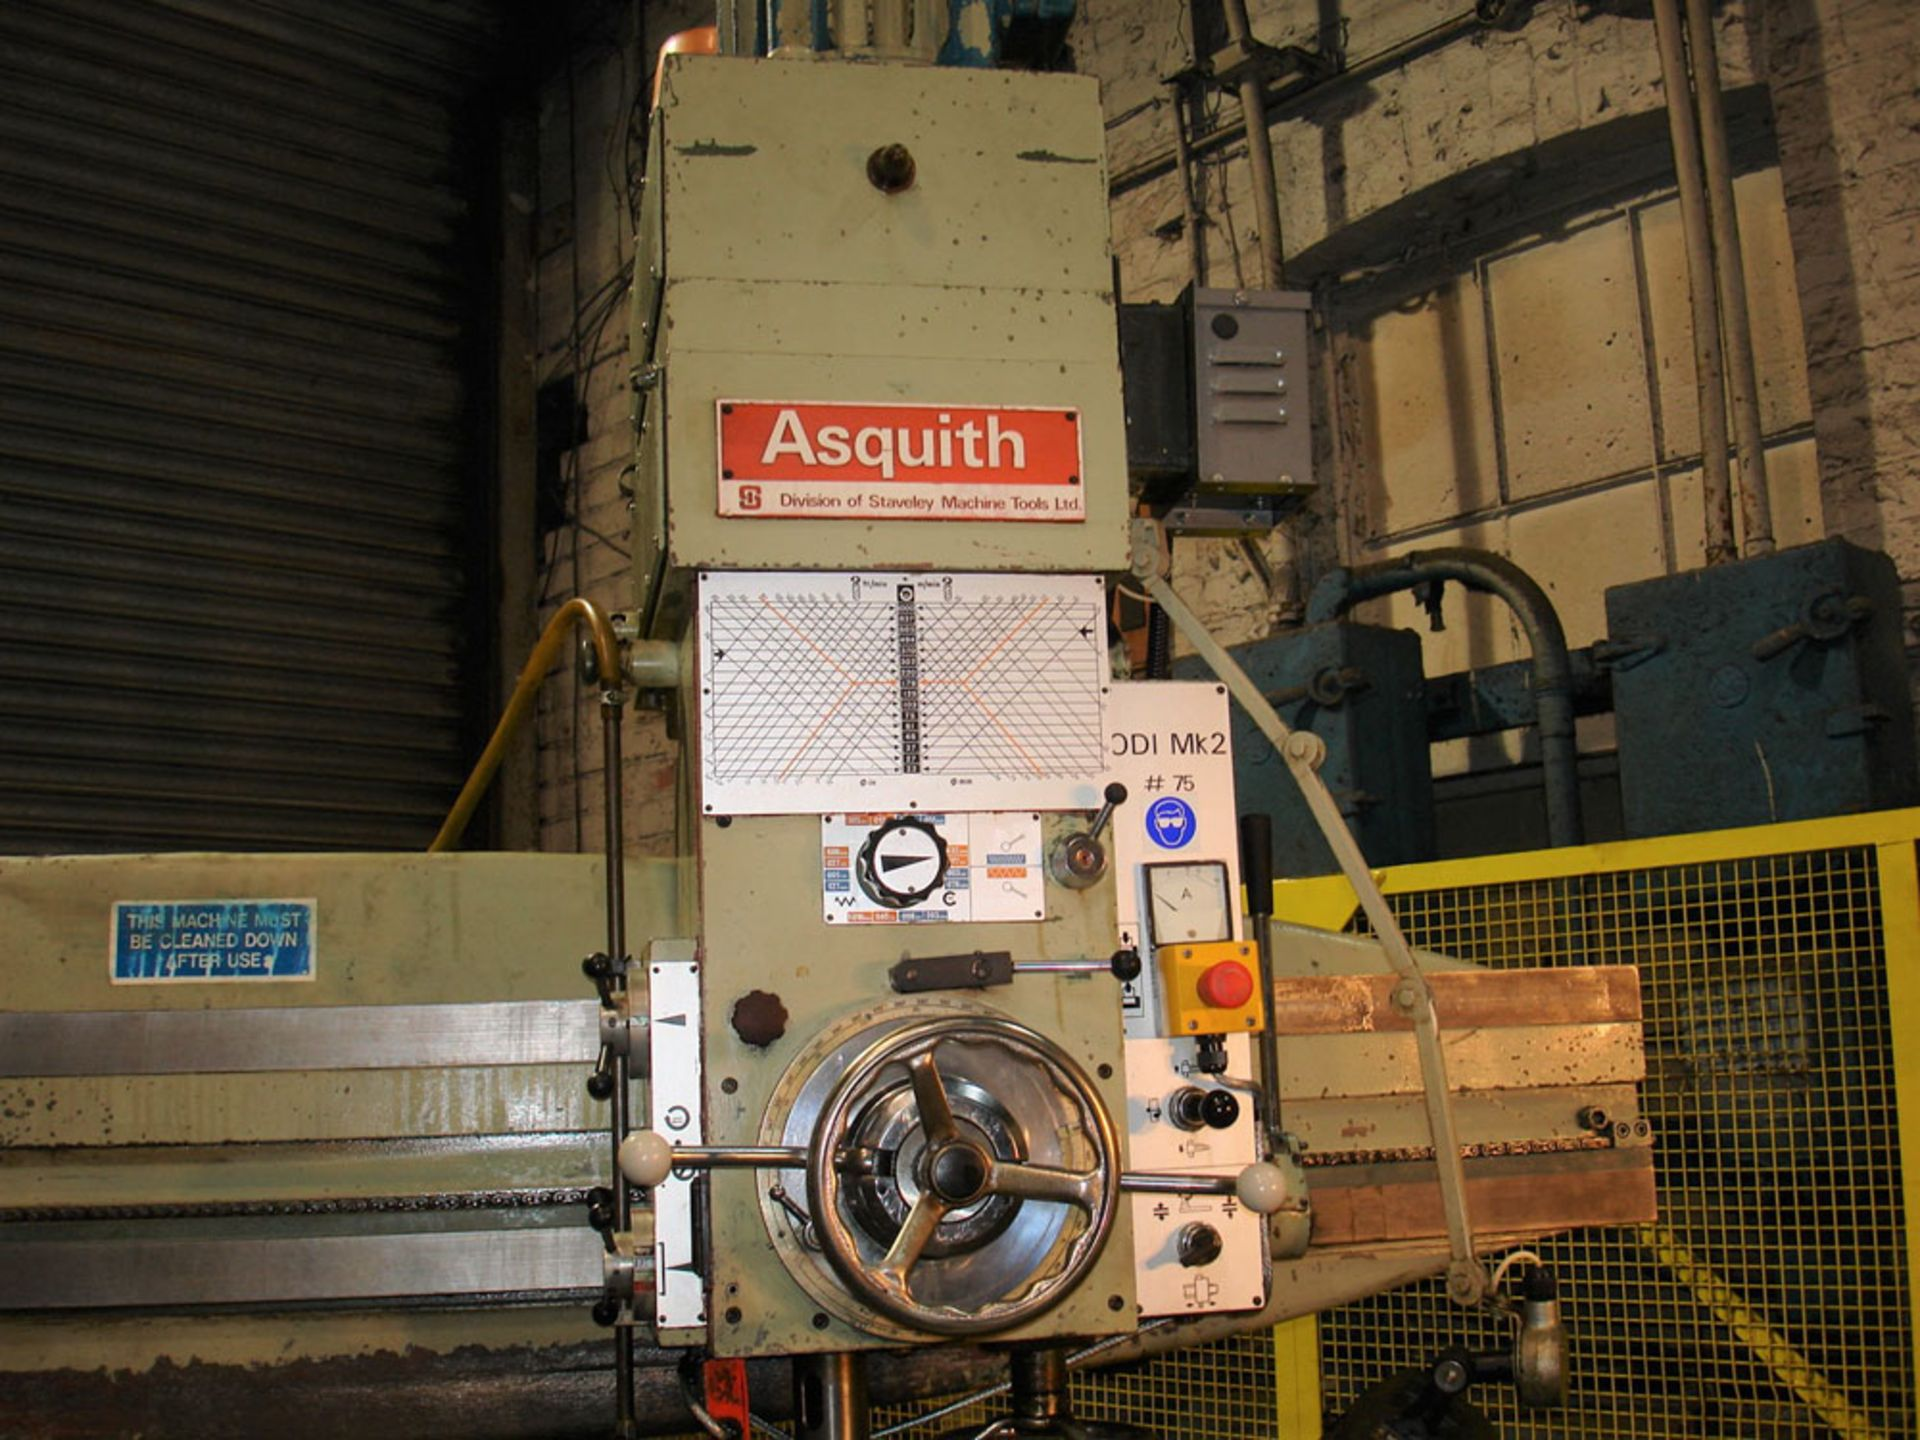 Asquith OD1 MK2 16/72 Radial Arm Drill. Arm Length 6ft. Spindle 5 Morse Taper. - Image 2 of 7